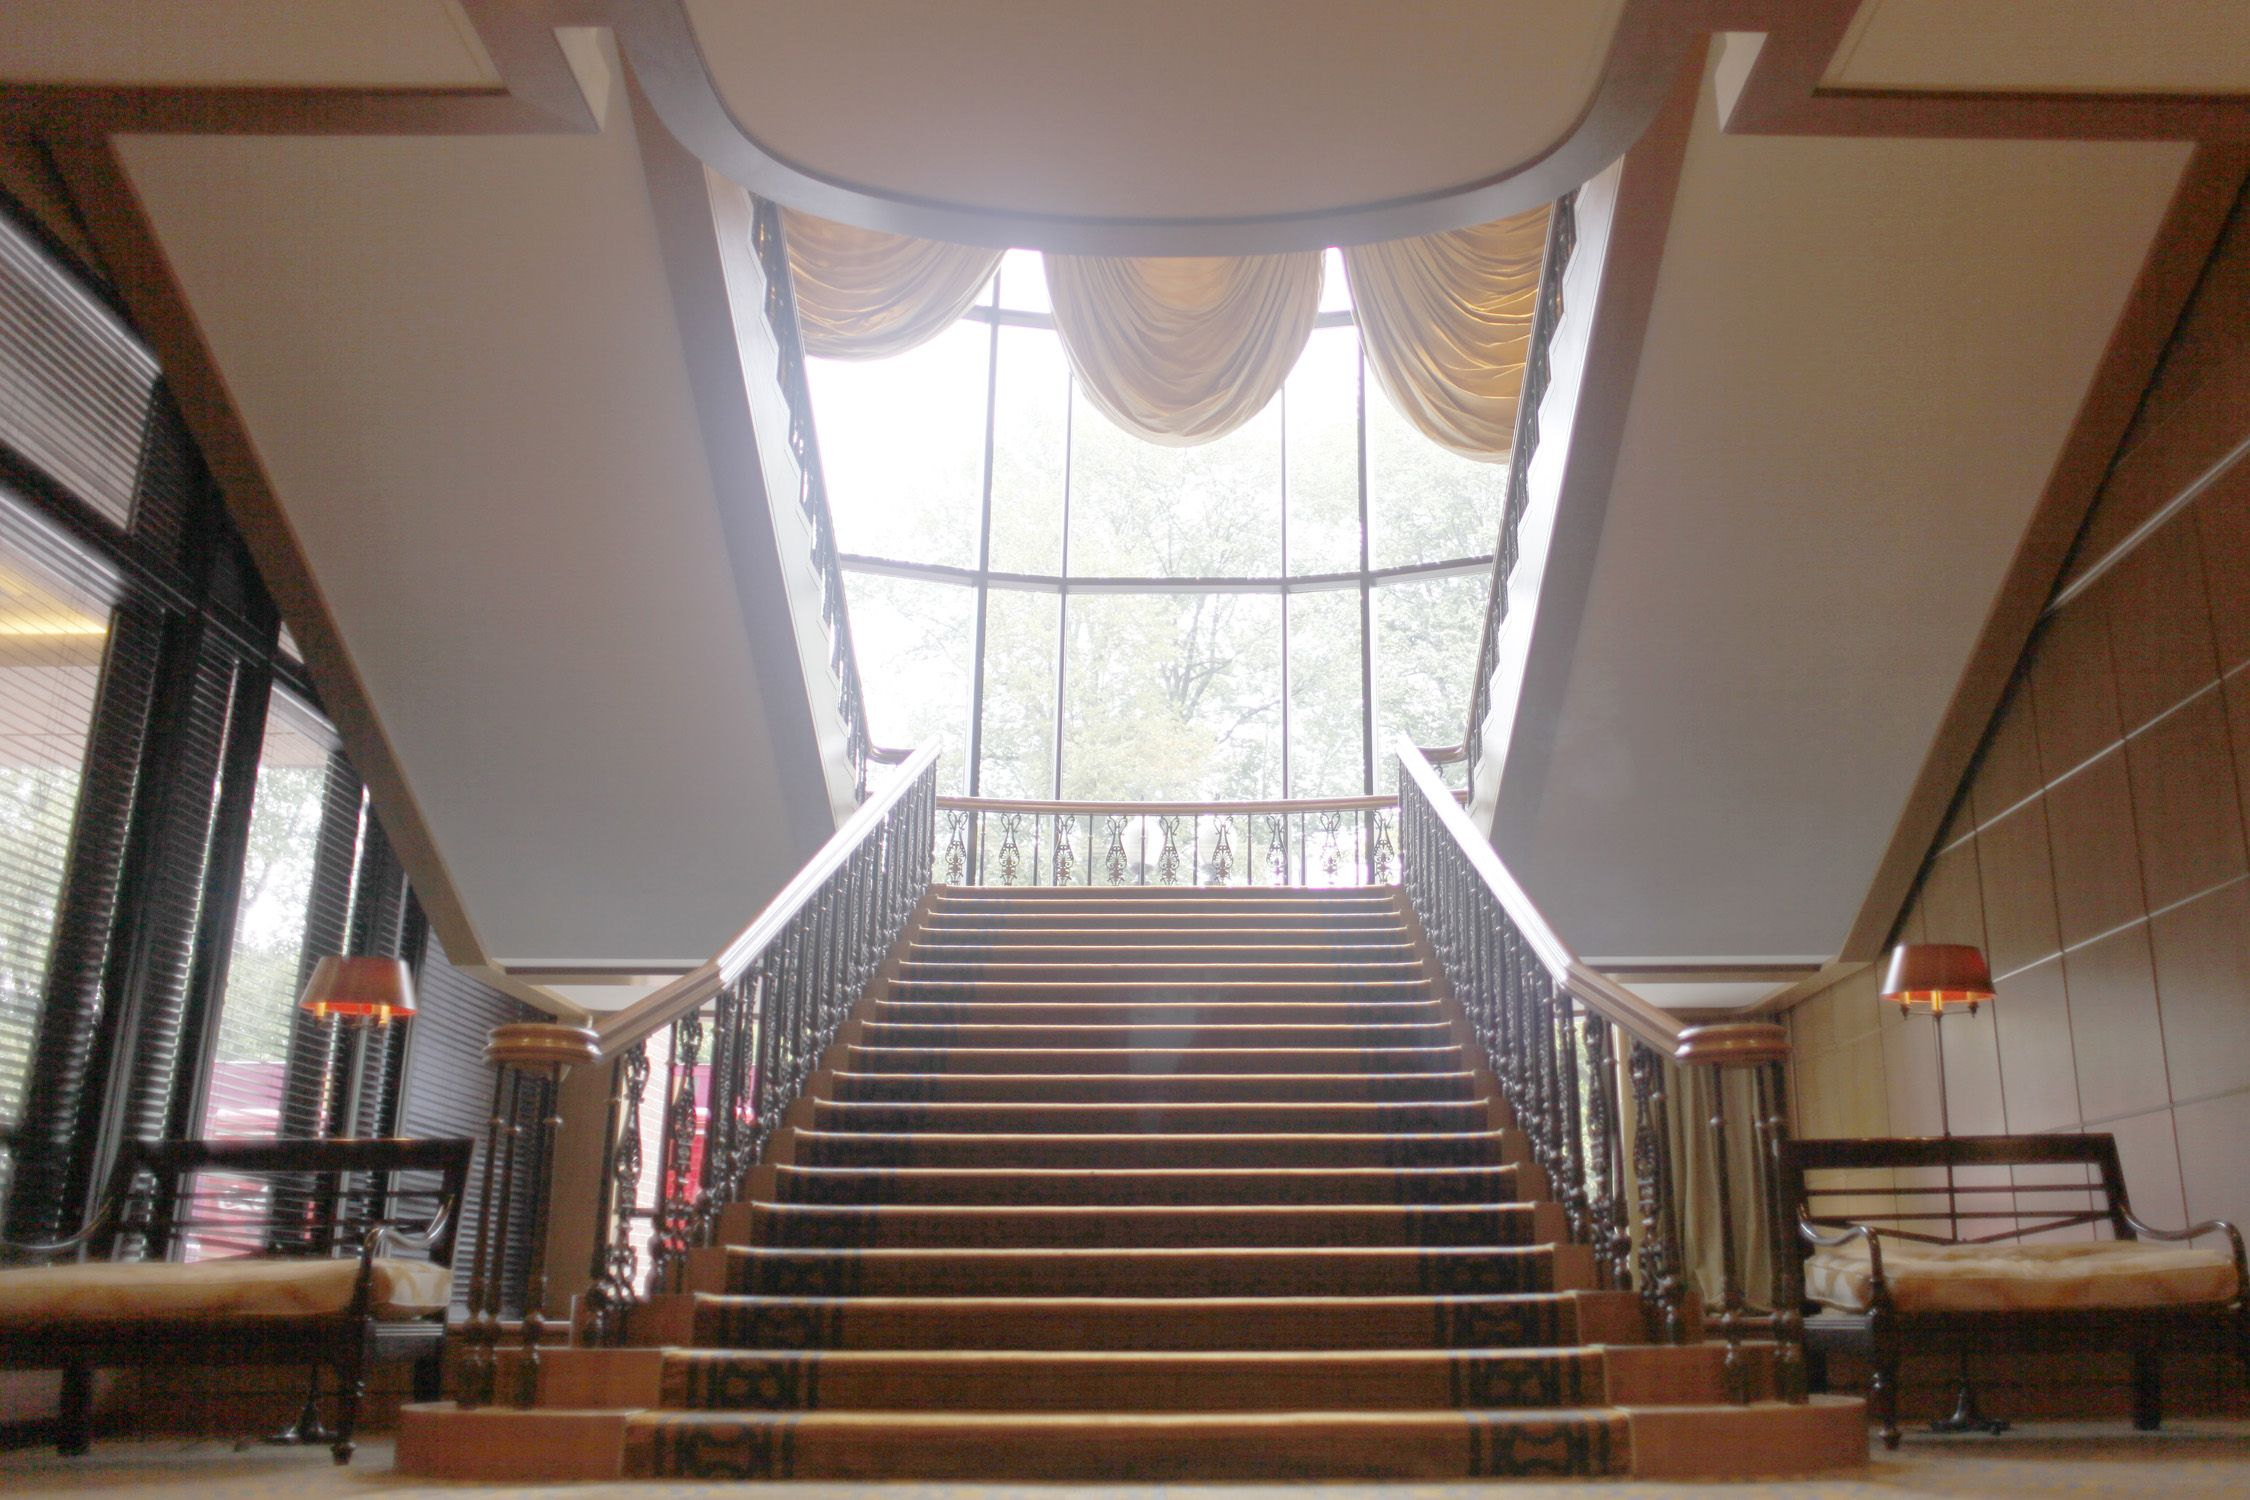 Four Seasons Hotel Boston The Grand Staircase Courtesy Of Forbes Boston Hotels Brownstone Homes Hotel